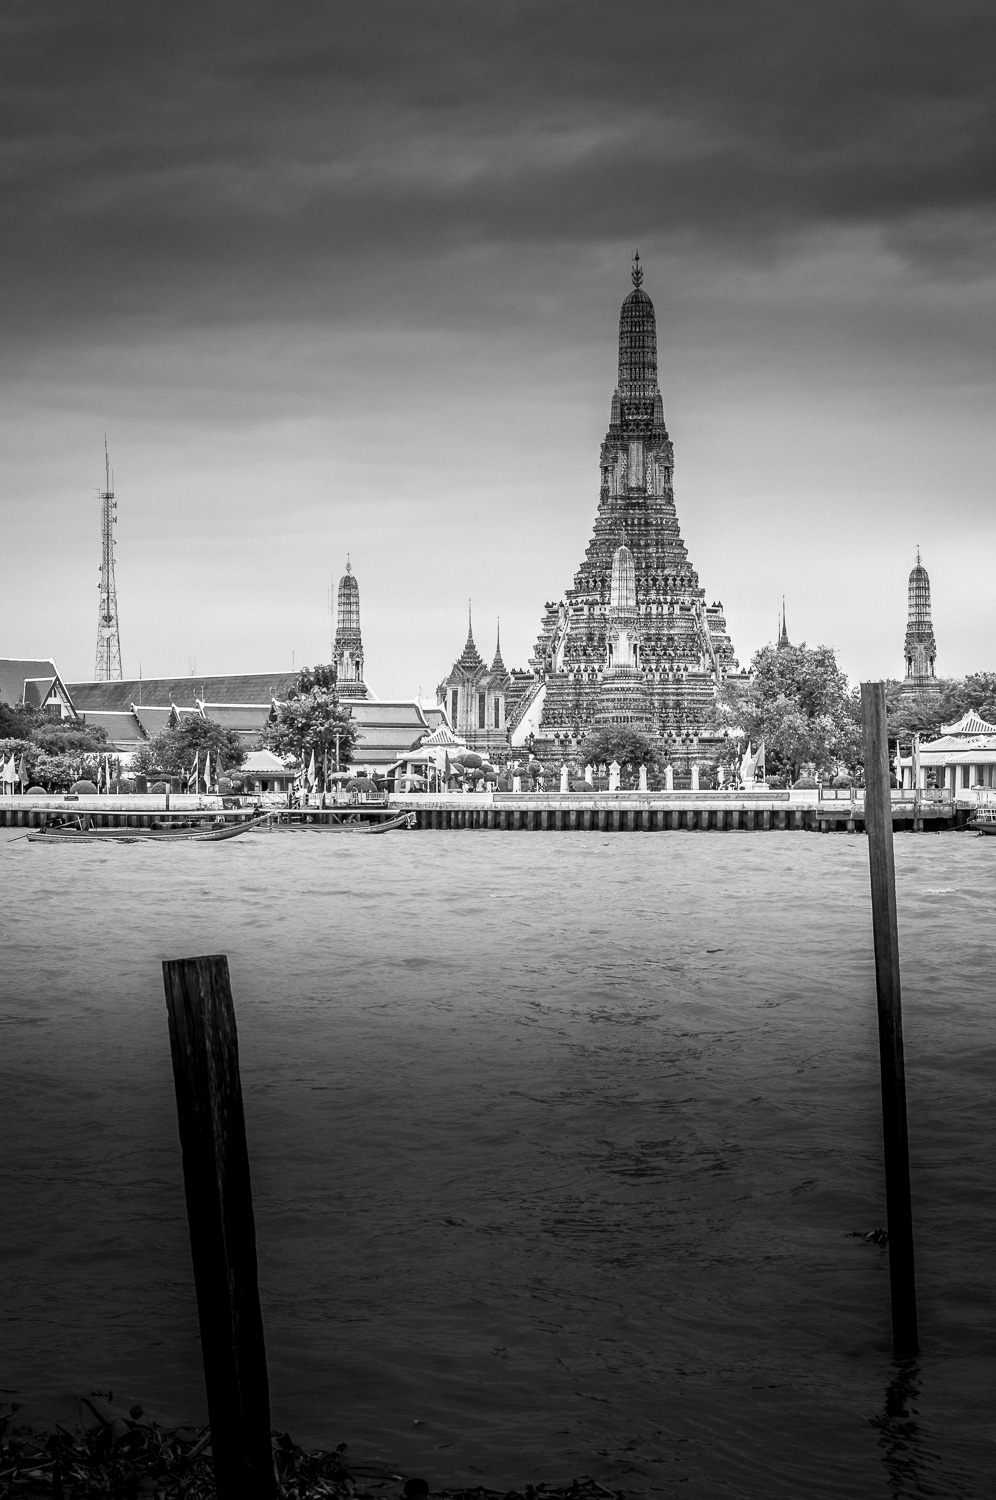 Wat Arun - The Temple of Dawn - Chao Phraya River Bangkok Thailand